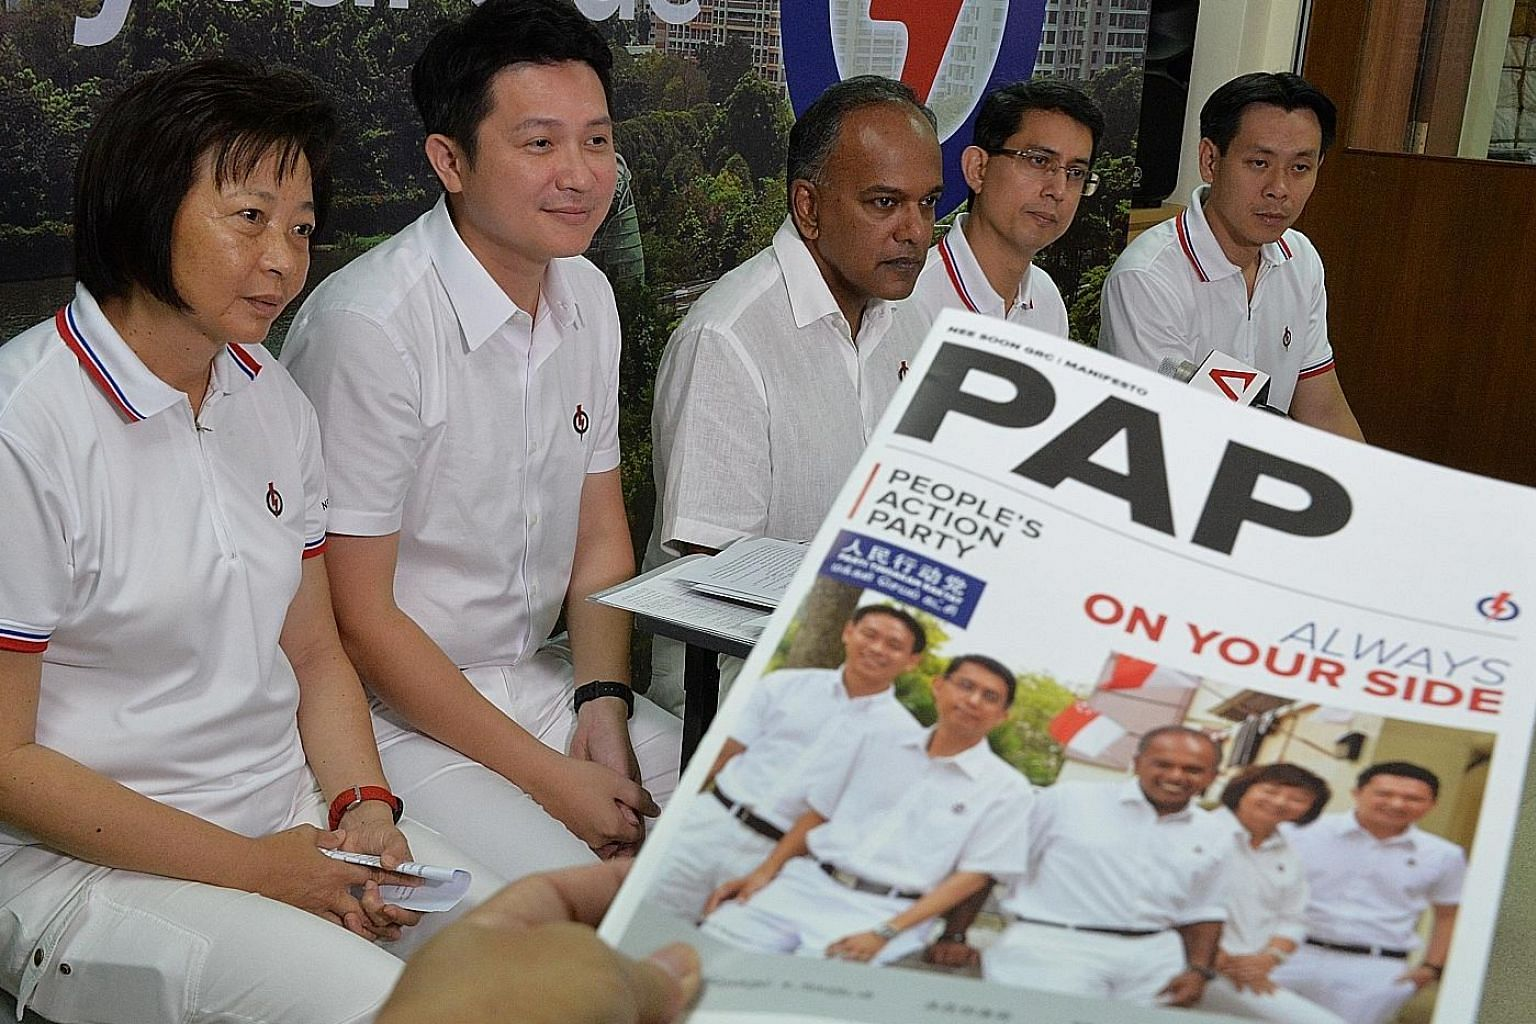 PAP's Nee Soon GRC candidates (from left) Lee Bee Wah, Henry Kwek, K. Shanmugam, Muhammad Faishal Ibrahim and Louis Ng at a press conference to unveil their local manifesto.